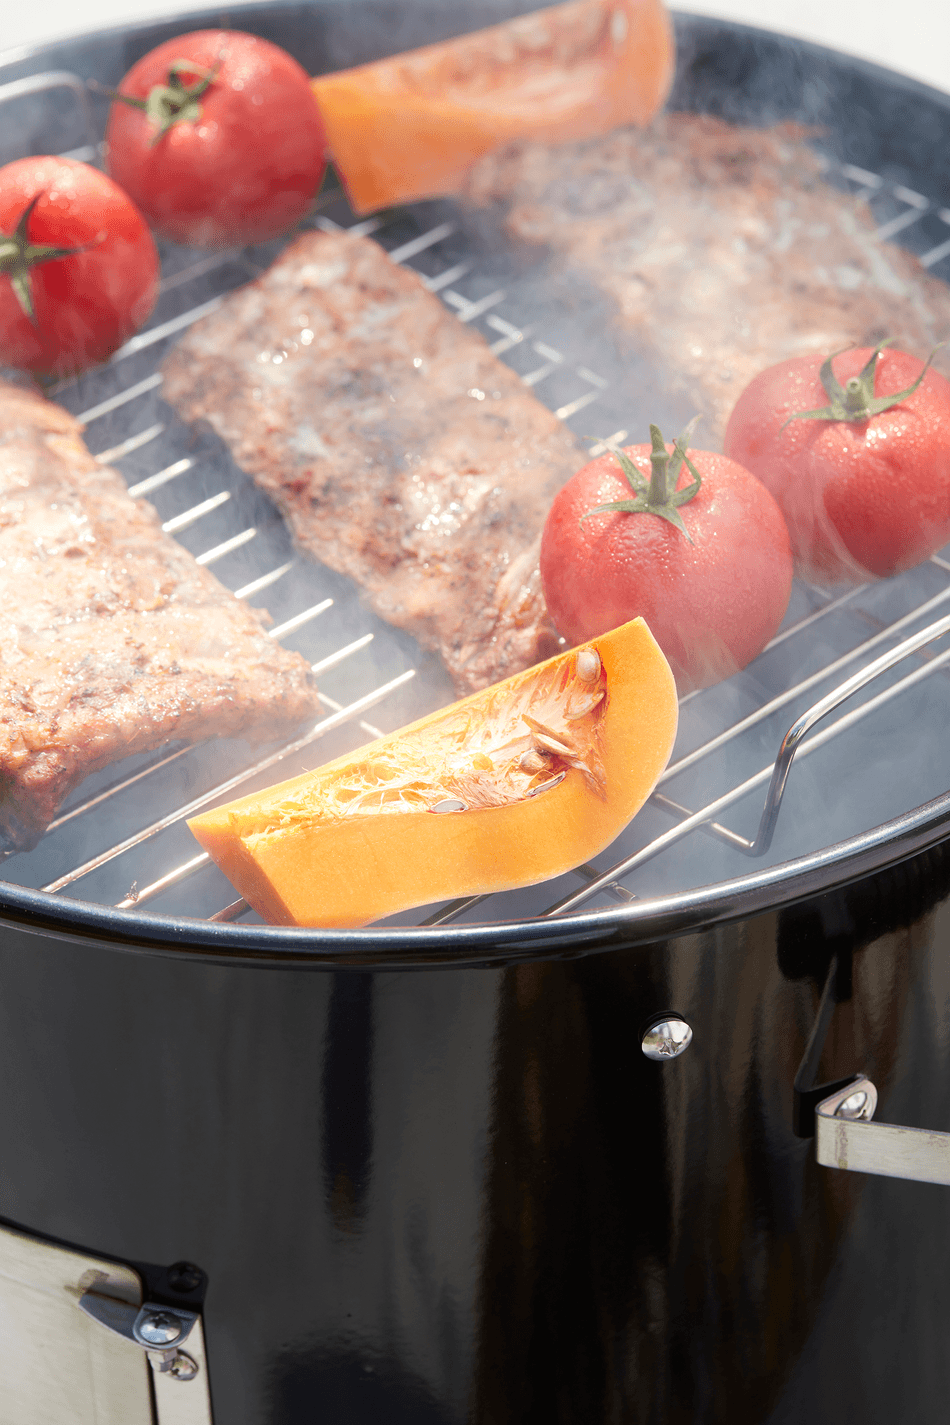 What are the advantages of an Oskar M smoker?